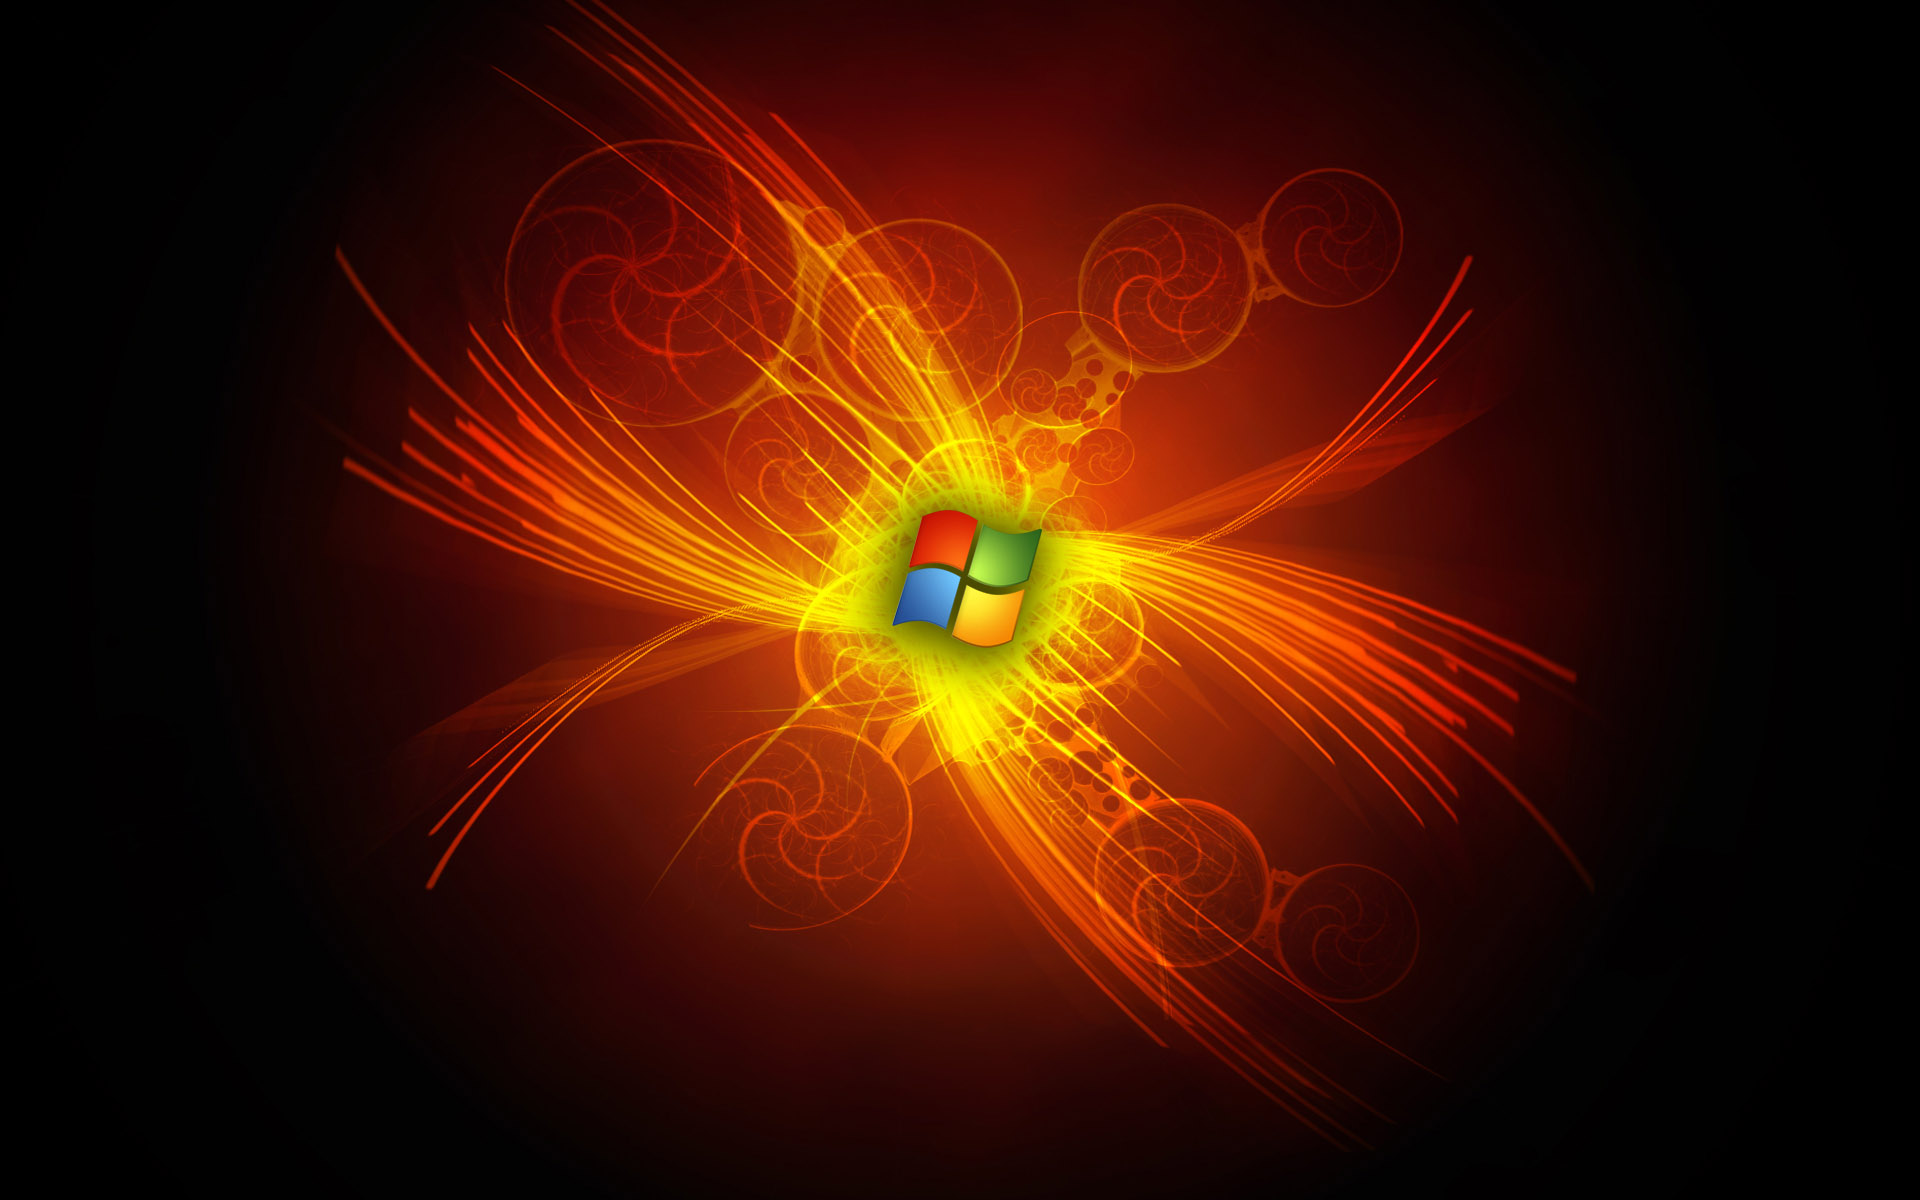 windows 7 free wallpaper Technology Wallpapers | Technology Backgrounds